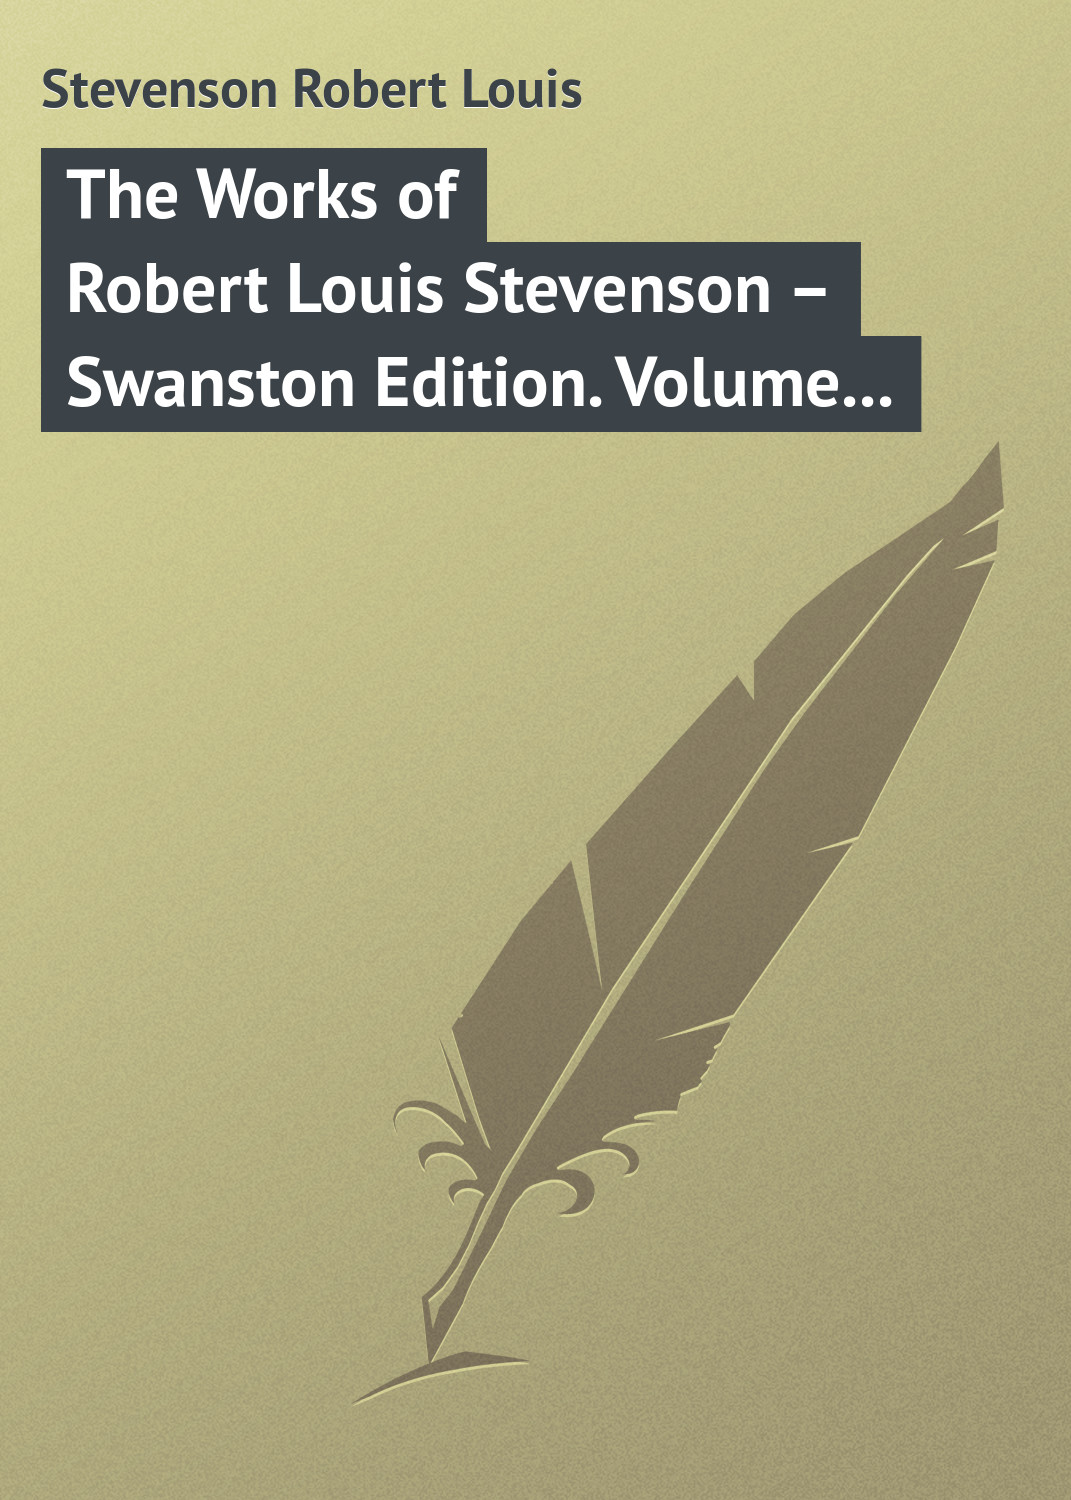 цена на Роберт Льюис Стивенсон The Works of Robert Louis Stevenson – Swanston Edition. Volume 11